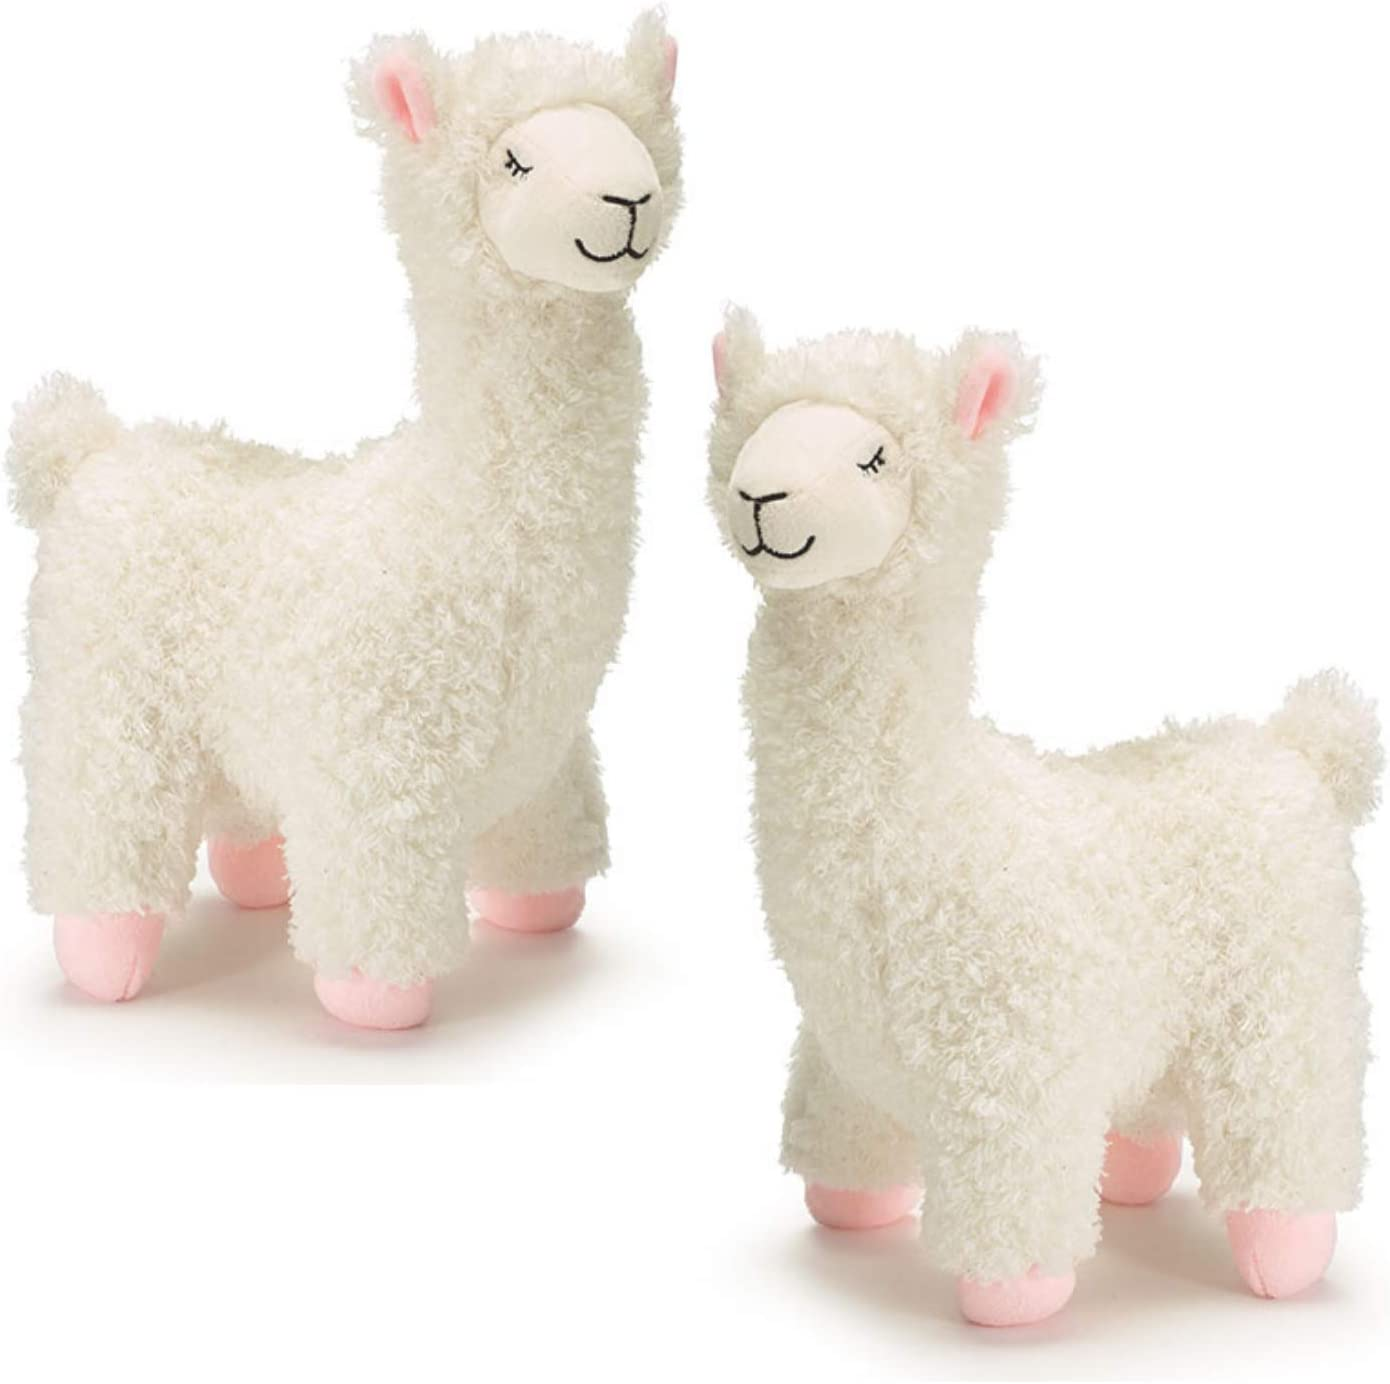 10 Smoochie Plush Pink Imperial Toy 22944 Fuzzbies